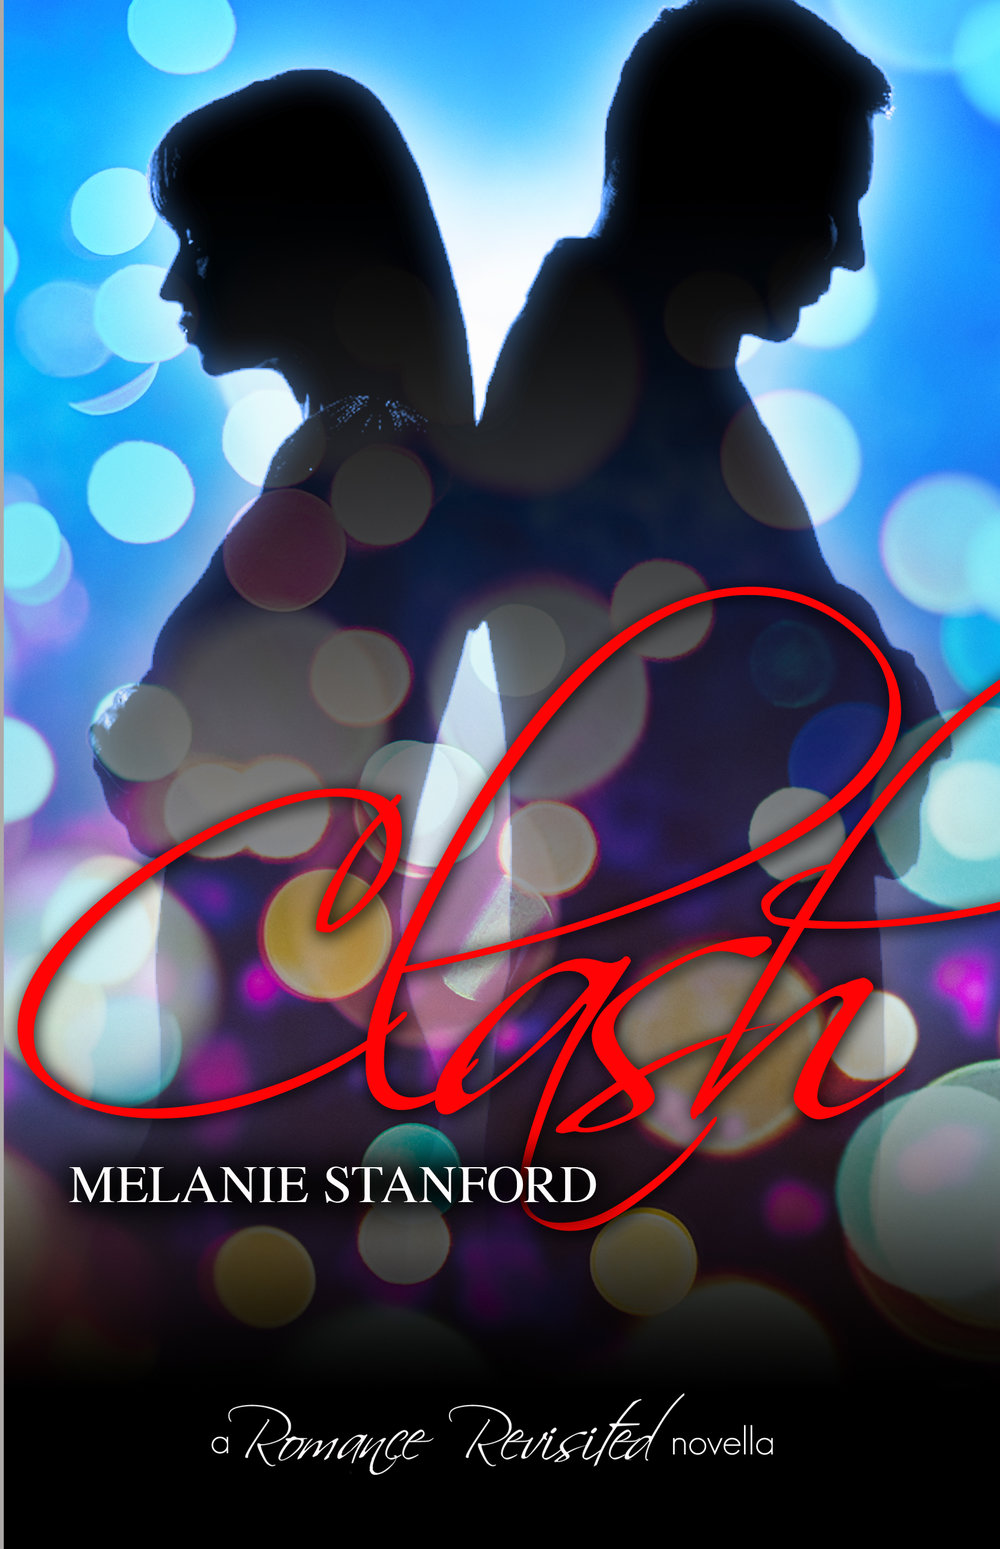 CLASH - Planning a party is easy, falling in love is hard.No longer content to be a Los Angeles socialite, Elizabeth Elliot starts her own party planning business: Excessively Diverted, making dreams come true one party at a time. She even knows how to handle those unruly party guests, like Antonio Reyes, the man who drank too much, insulted the décor, and didn't know the difference between crudités and canapés. The nerve. So when this same Tony Reyes demands she plan his daughter's Sweet Sixteen, Elizabeth refuses, no matter how many dollar signs are attached to his name. That is until Elizabeth discovers her new business is in trouble. She must suck up her pride and work with Tony, despite how much she hates the man.As Elizabeth gets to know Tony and his daughter, her clear-cut hatred starts to get muddled with feelings—the kind that could screw up the job, and her life, completely. She must decide whether risking her heart is worth it… but who has time for all that when there's a party to be planned?